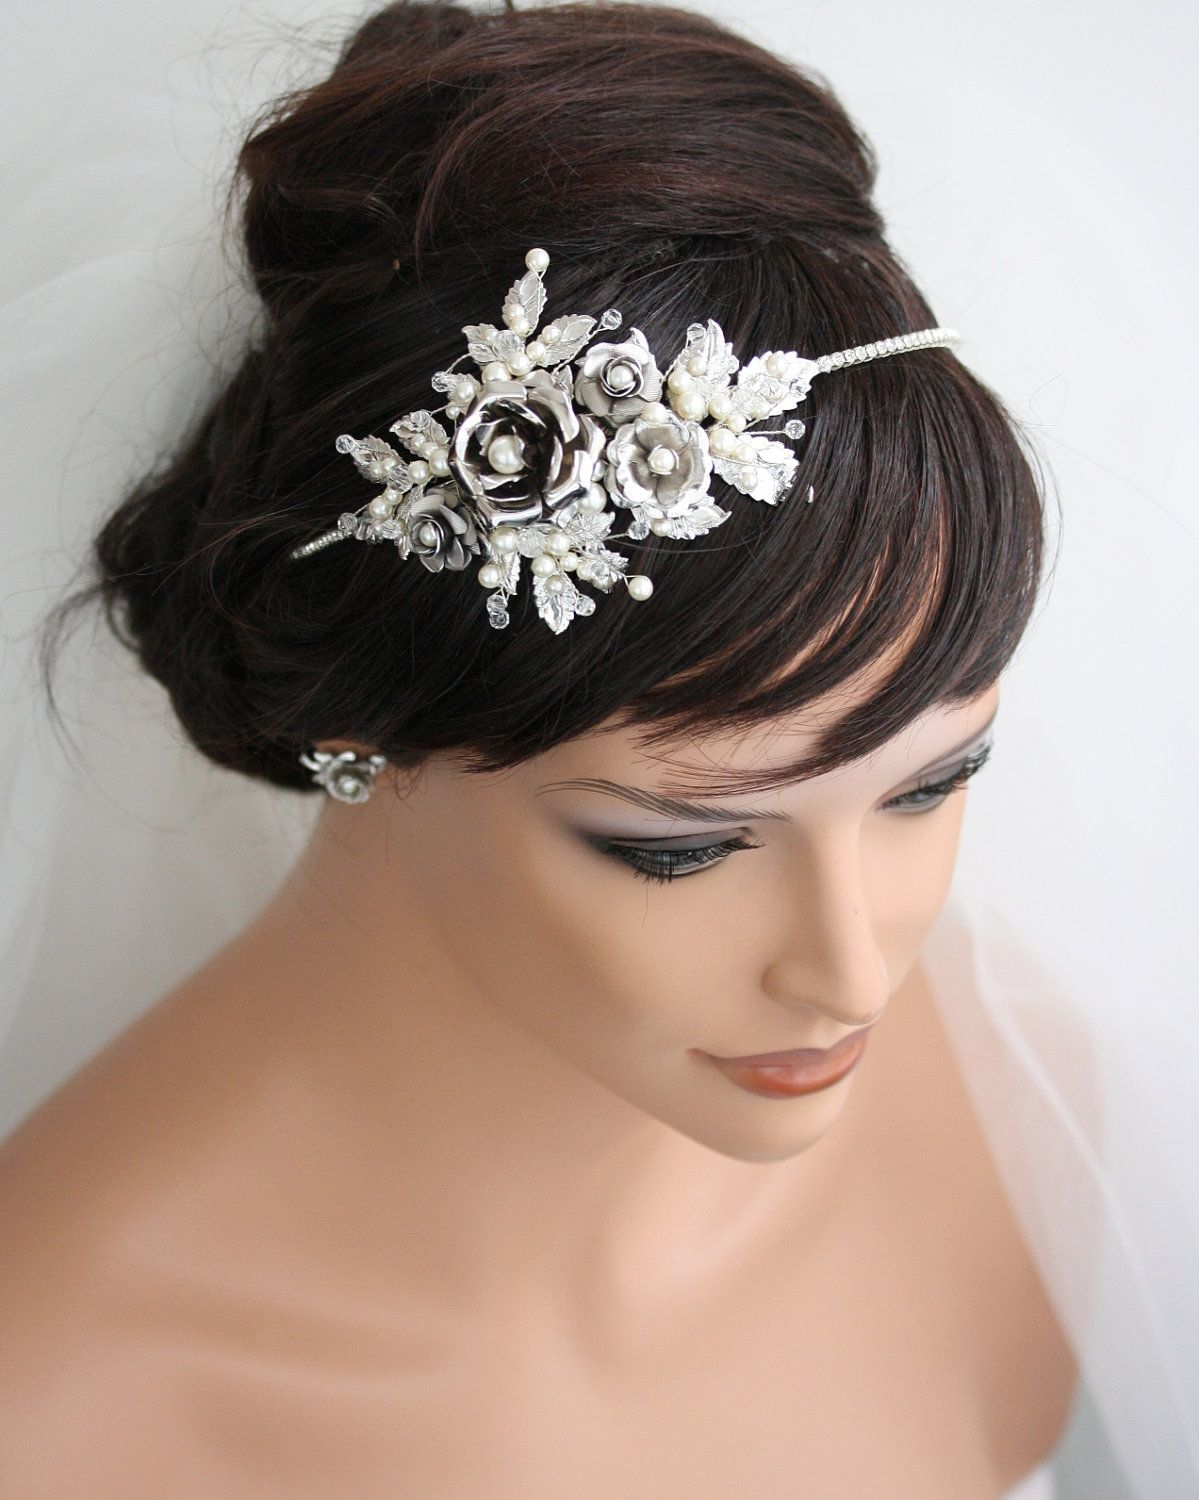 bridal headband wedding hair accessories vintage side tiara